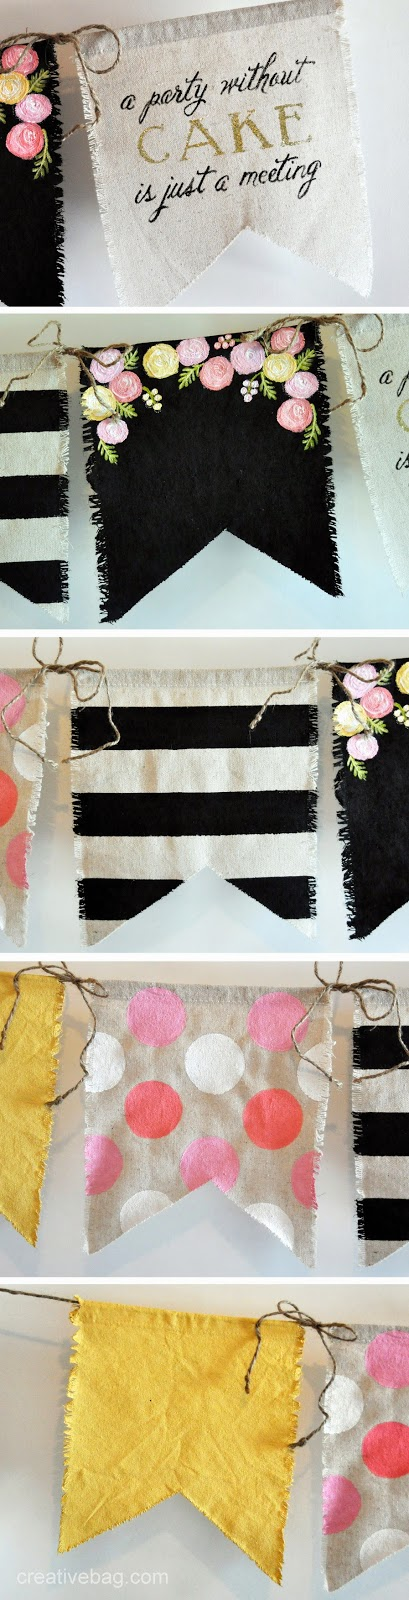 cute diy bunting inspiration for parties, weddings and special events | creativebag.com